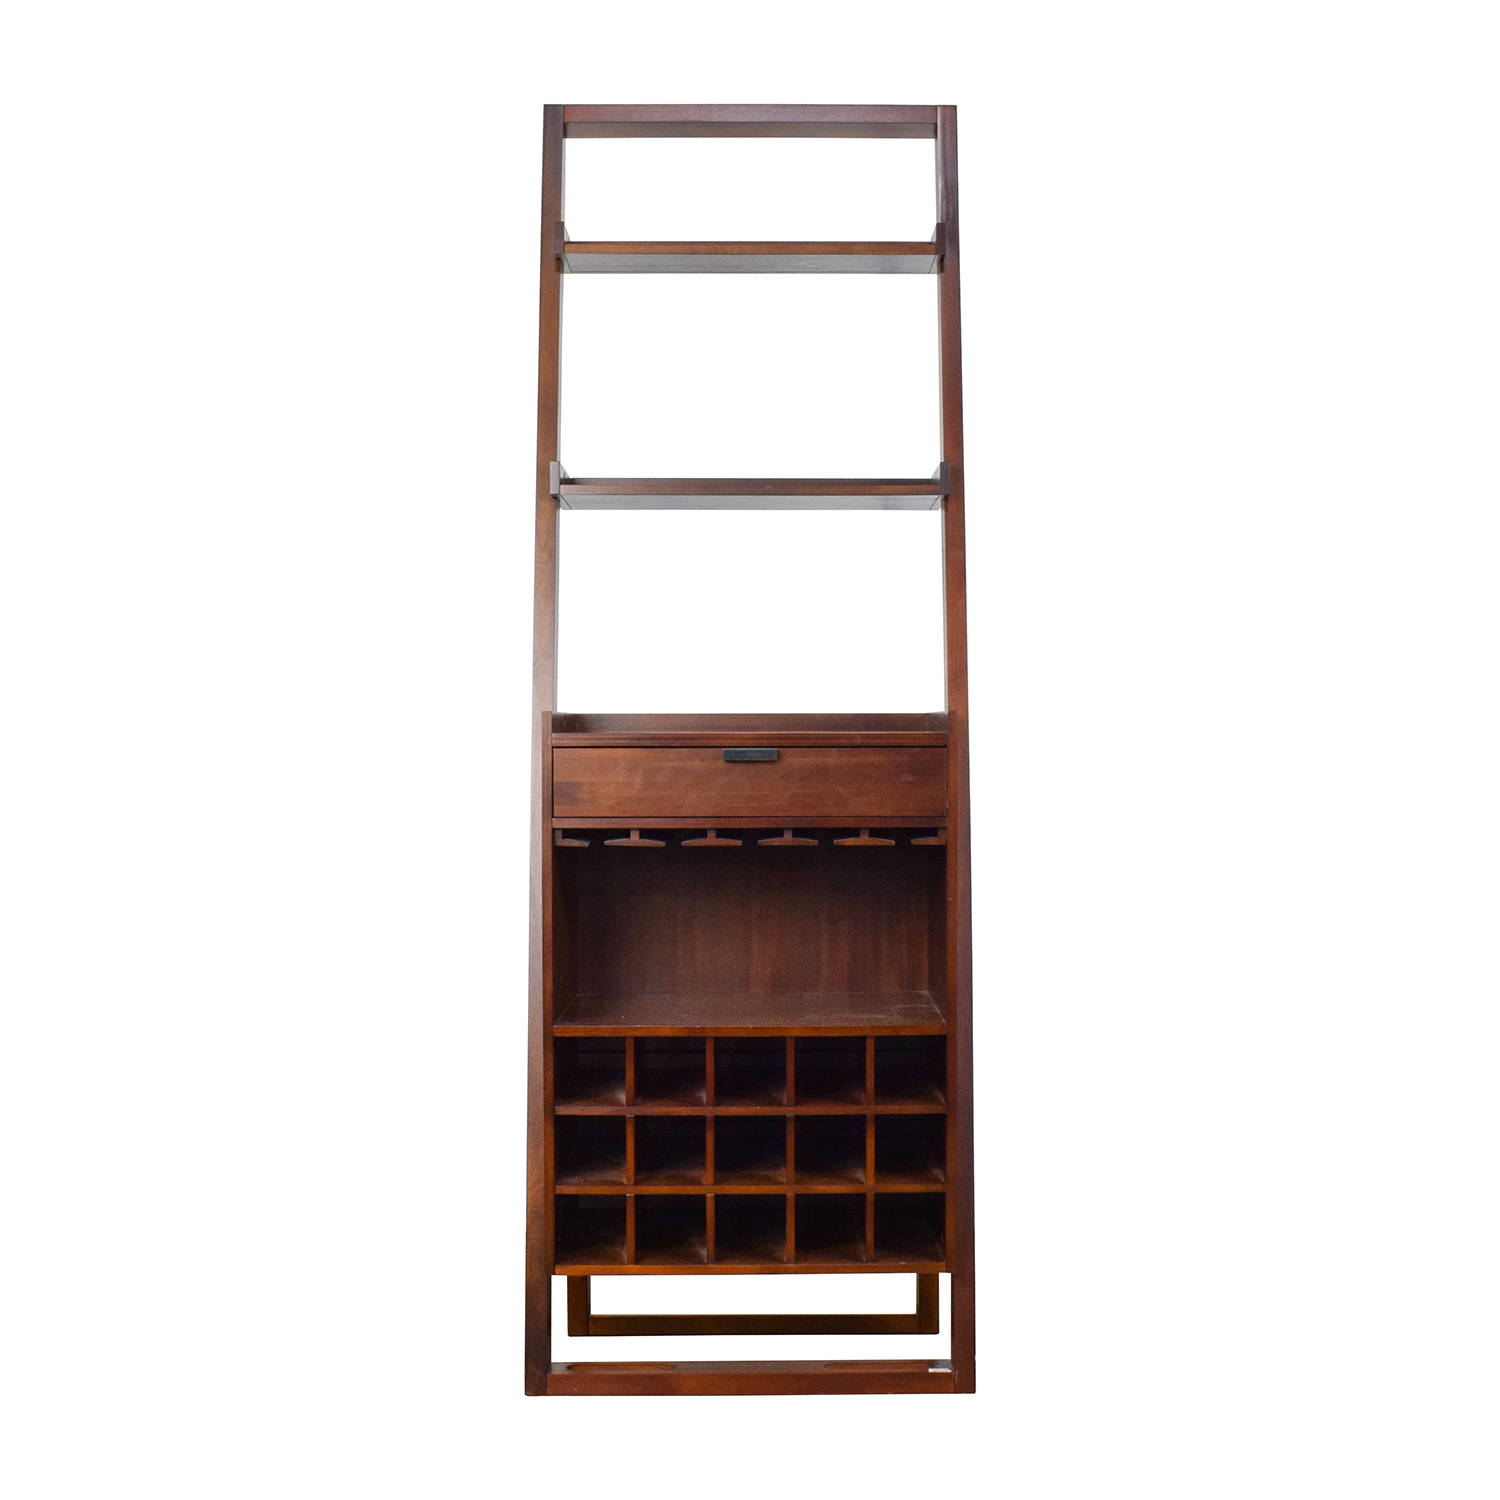 Crate & Barrel Wood Leaning Bookshelf Bar Storage